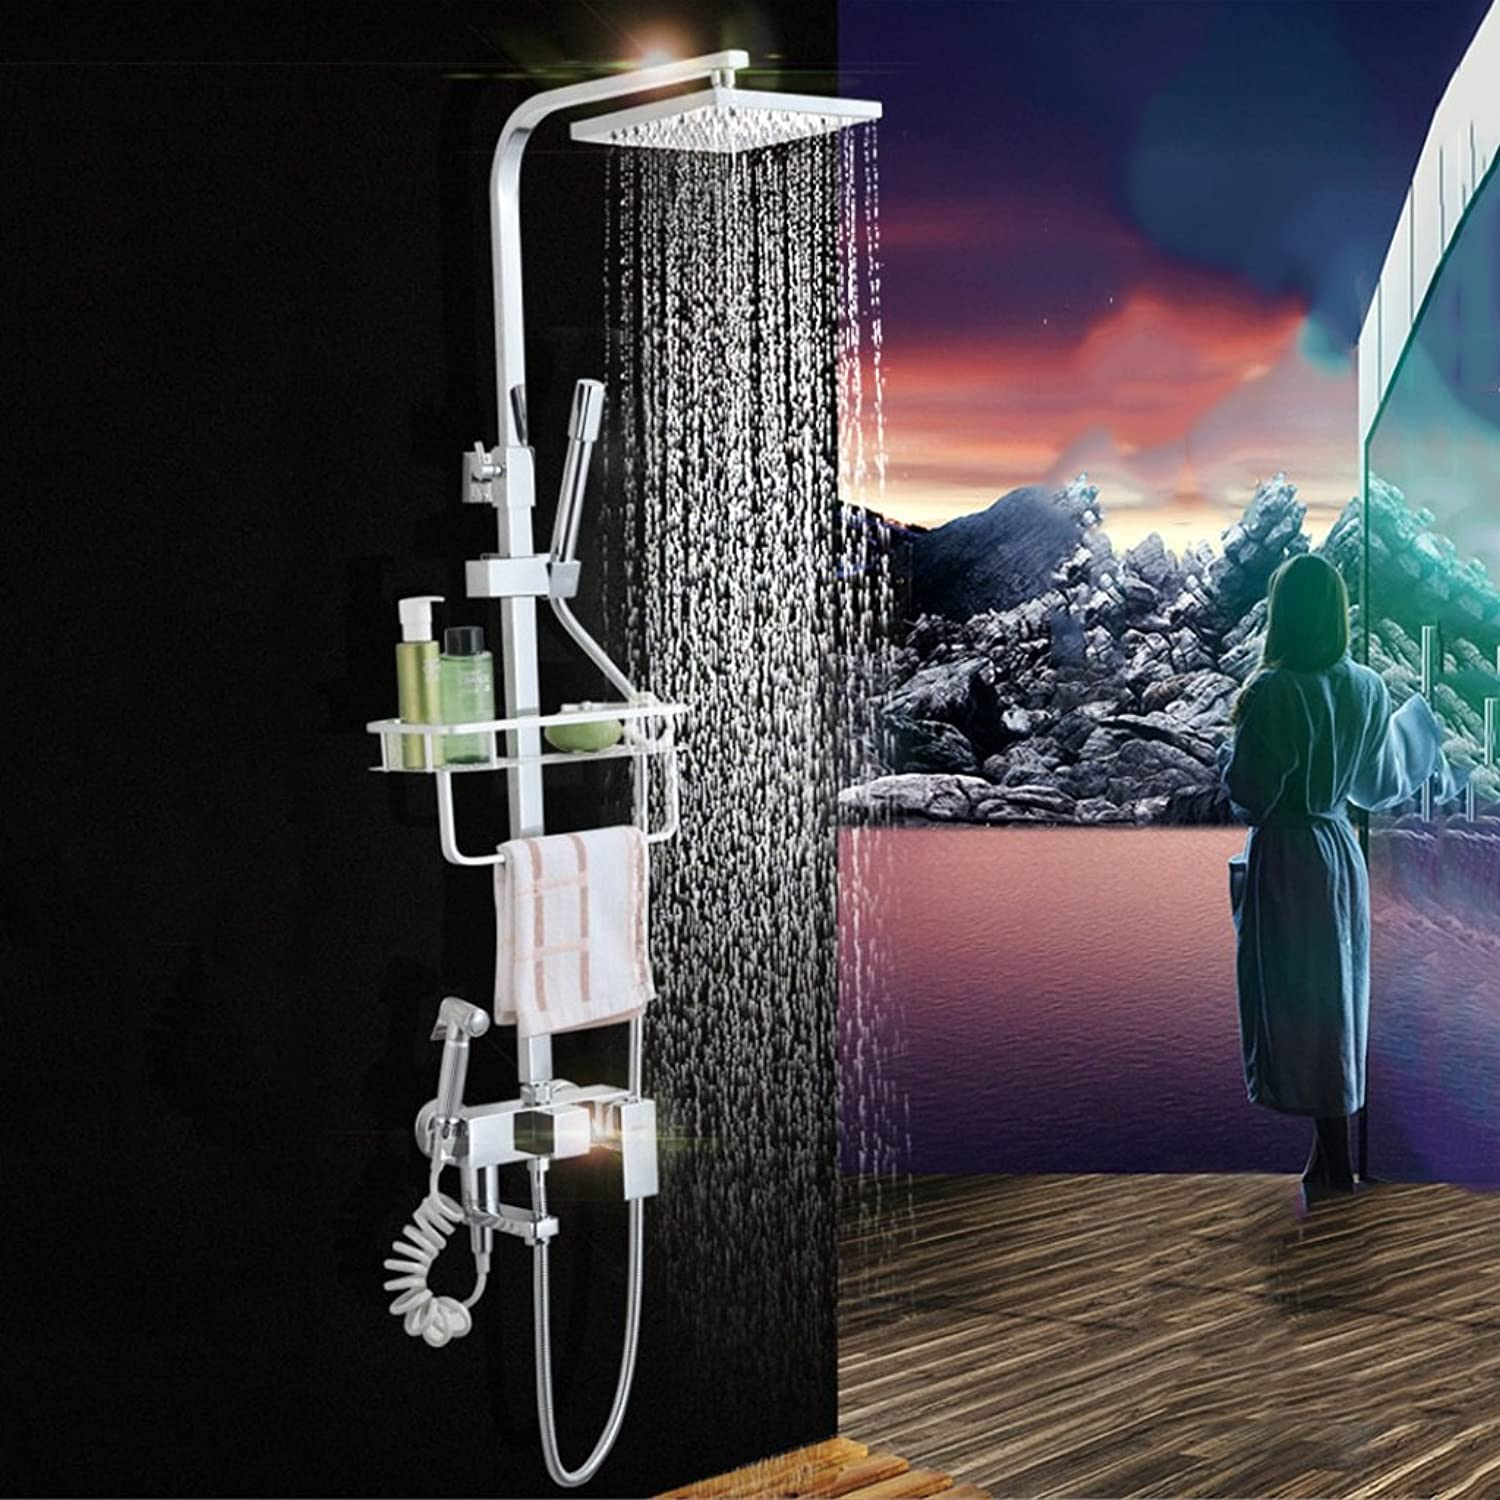 Square Thermostatic Shower Set 8 Inch Copper Nail Booster Pressure At The Top Of The Hot And Cold Water Mixing Valve Tap 3 Files